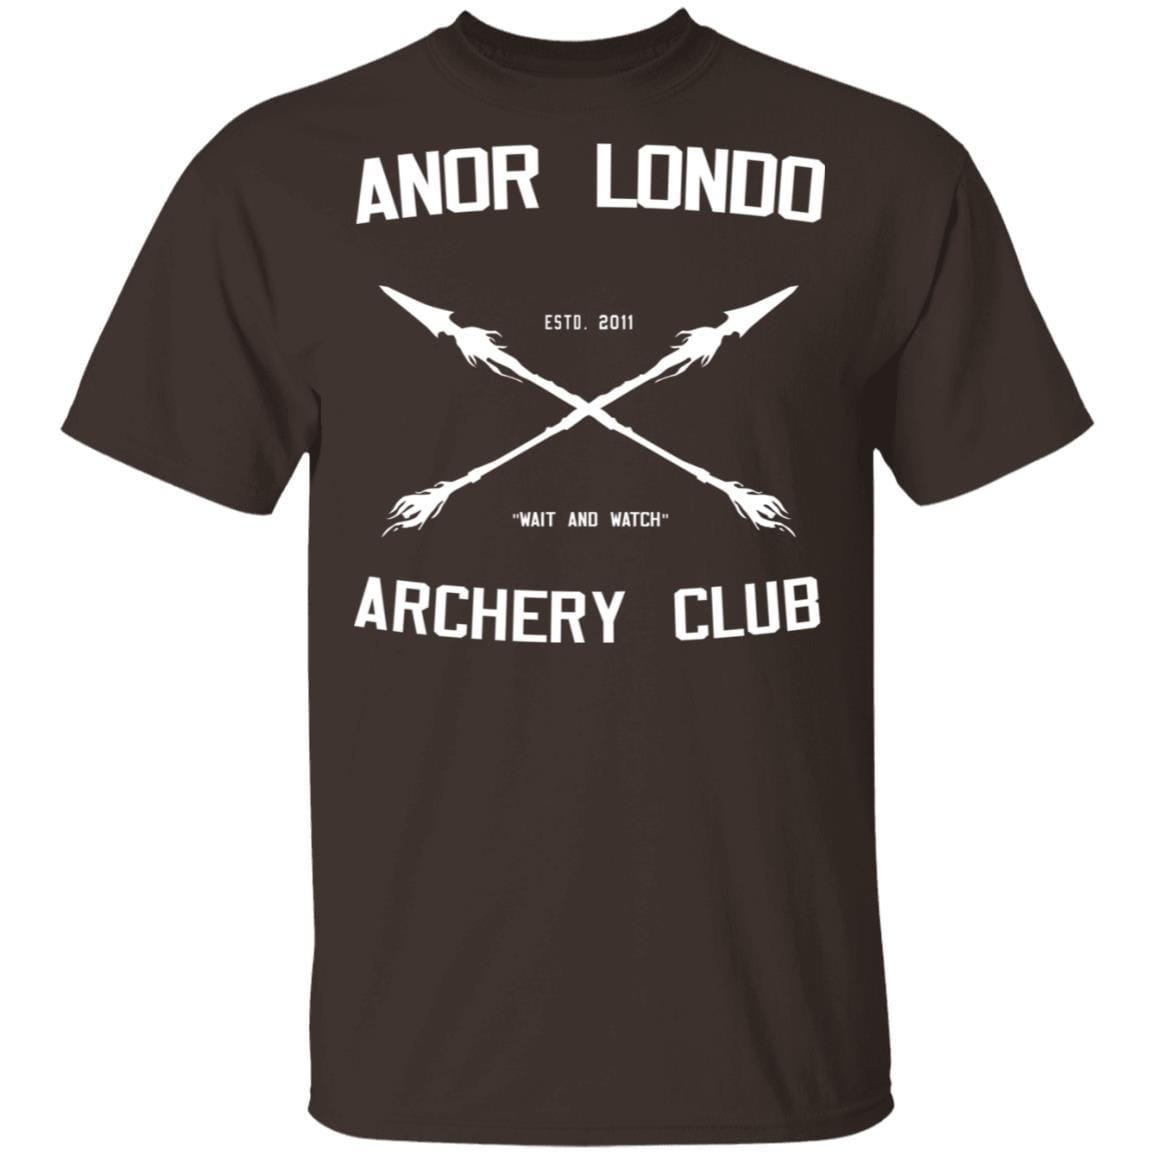 Anor Londo Archery Club 2011 T-Shirts, Hoodies 1049-9956-88767425-48152 - Tee Ript